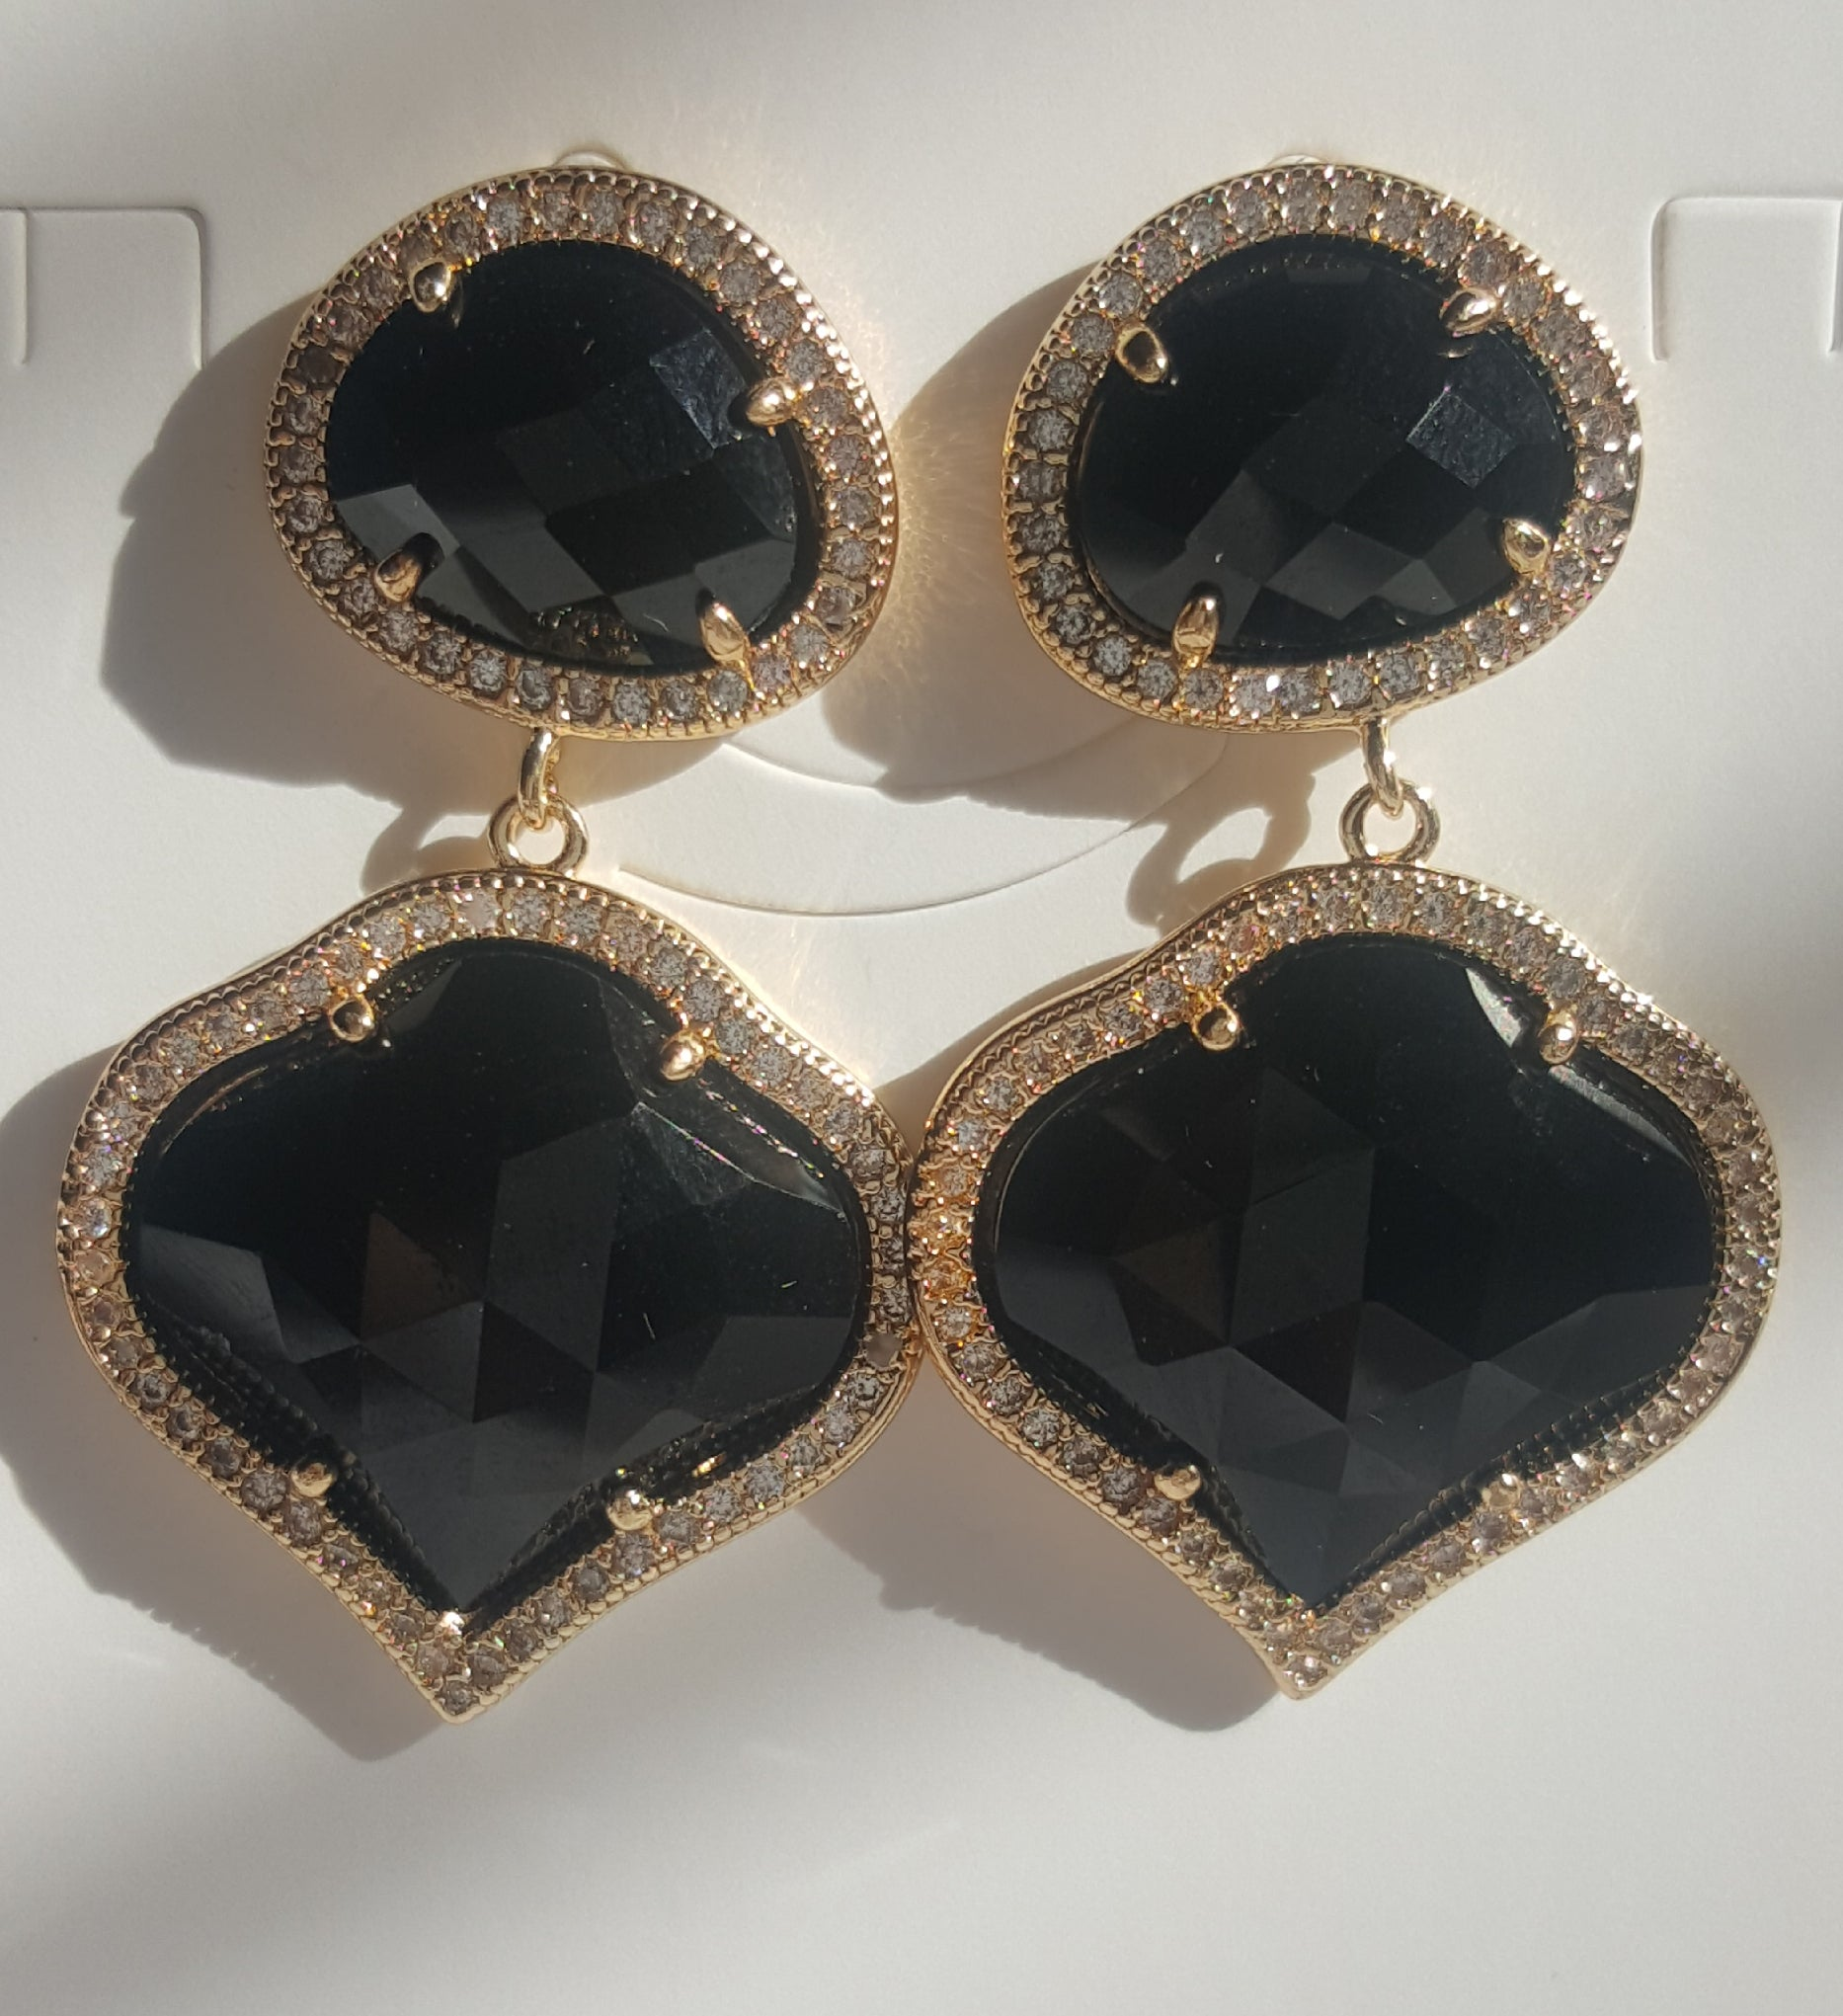 designer earrings mainro two tone gold diamond